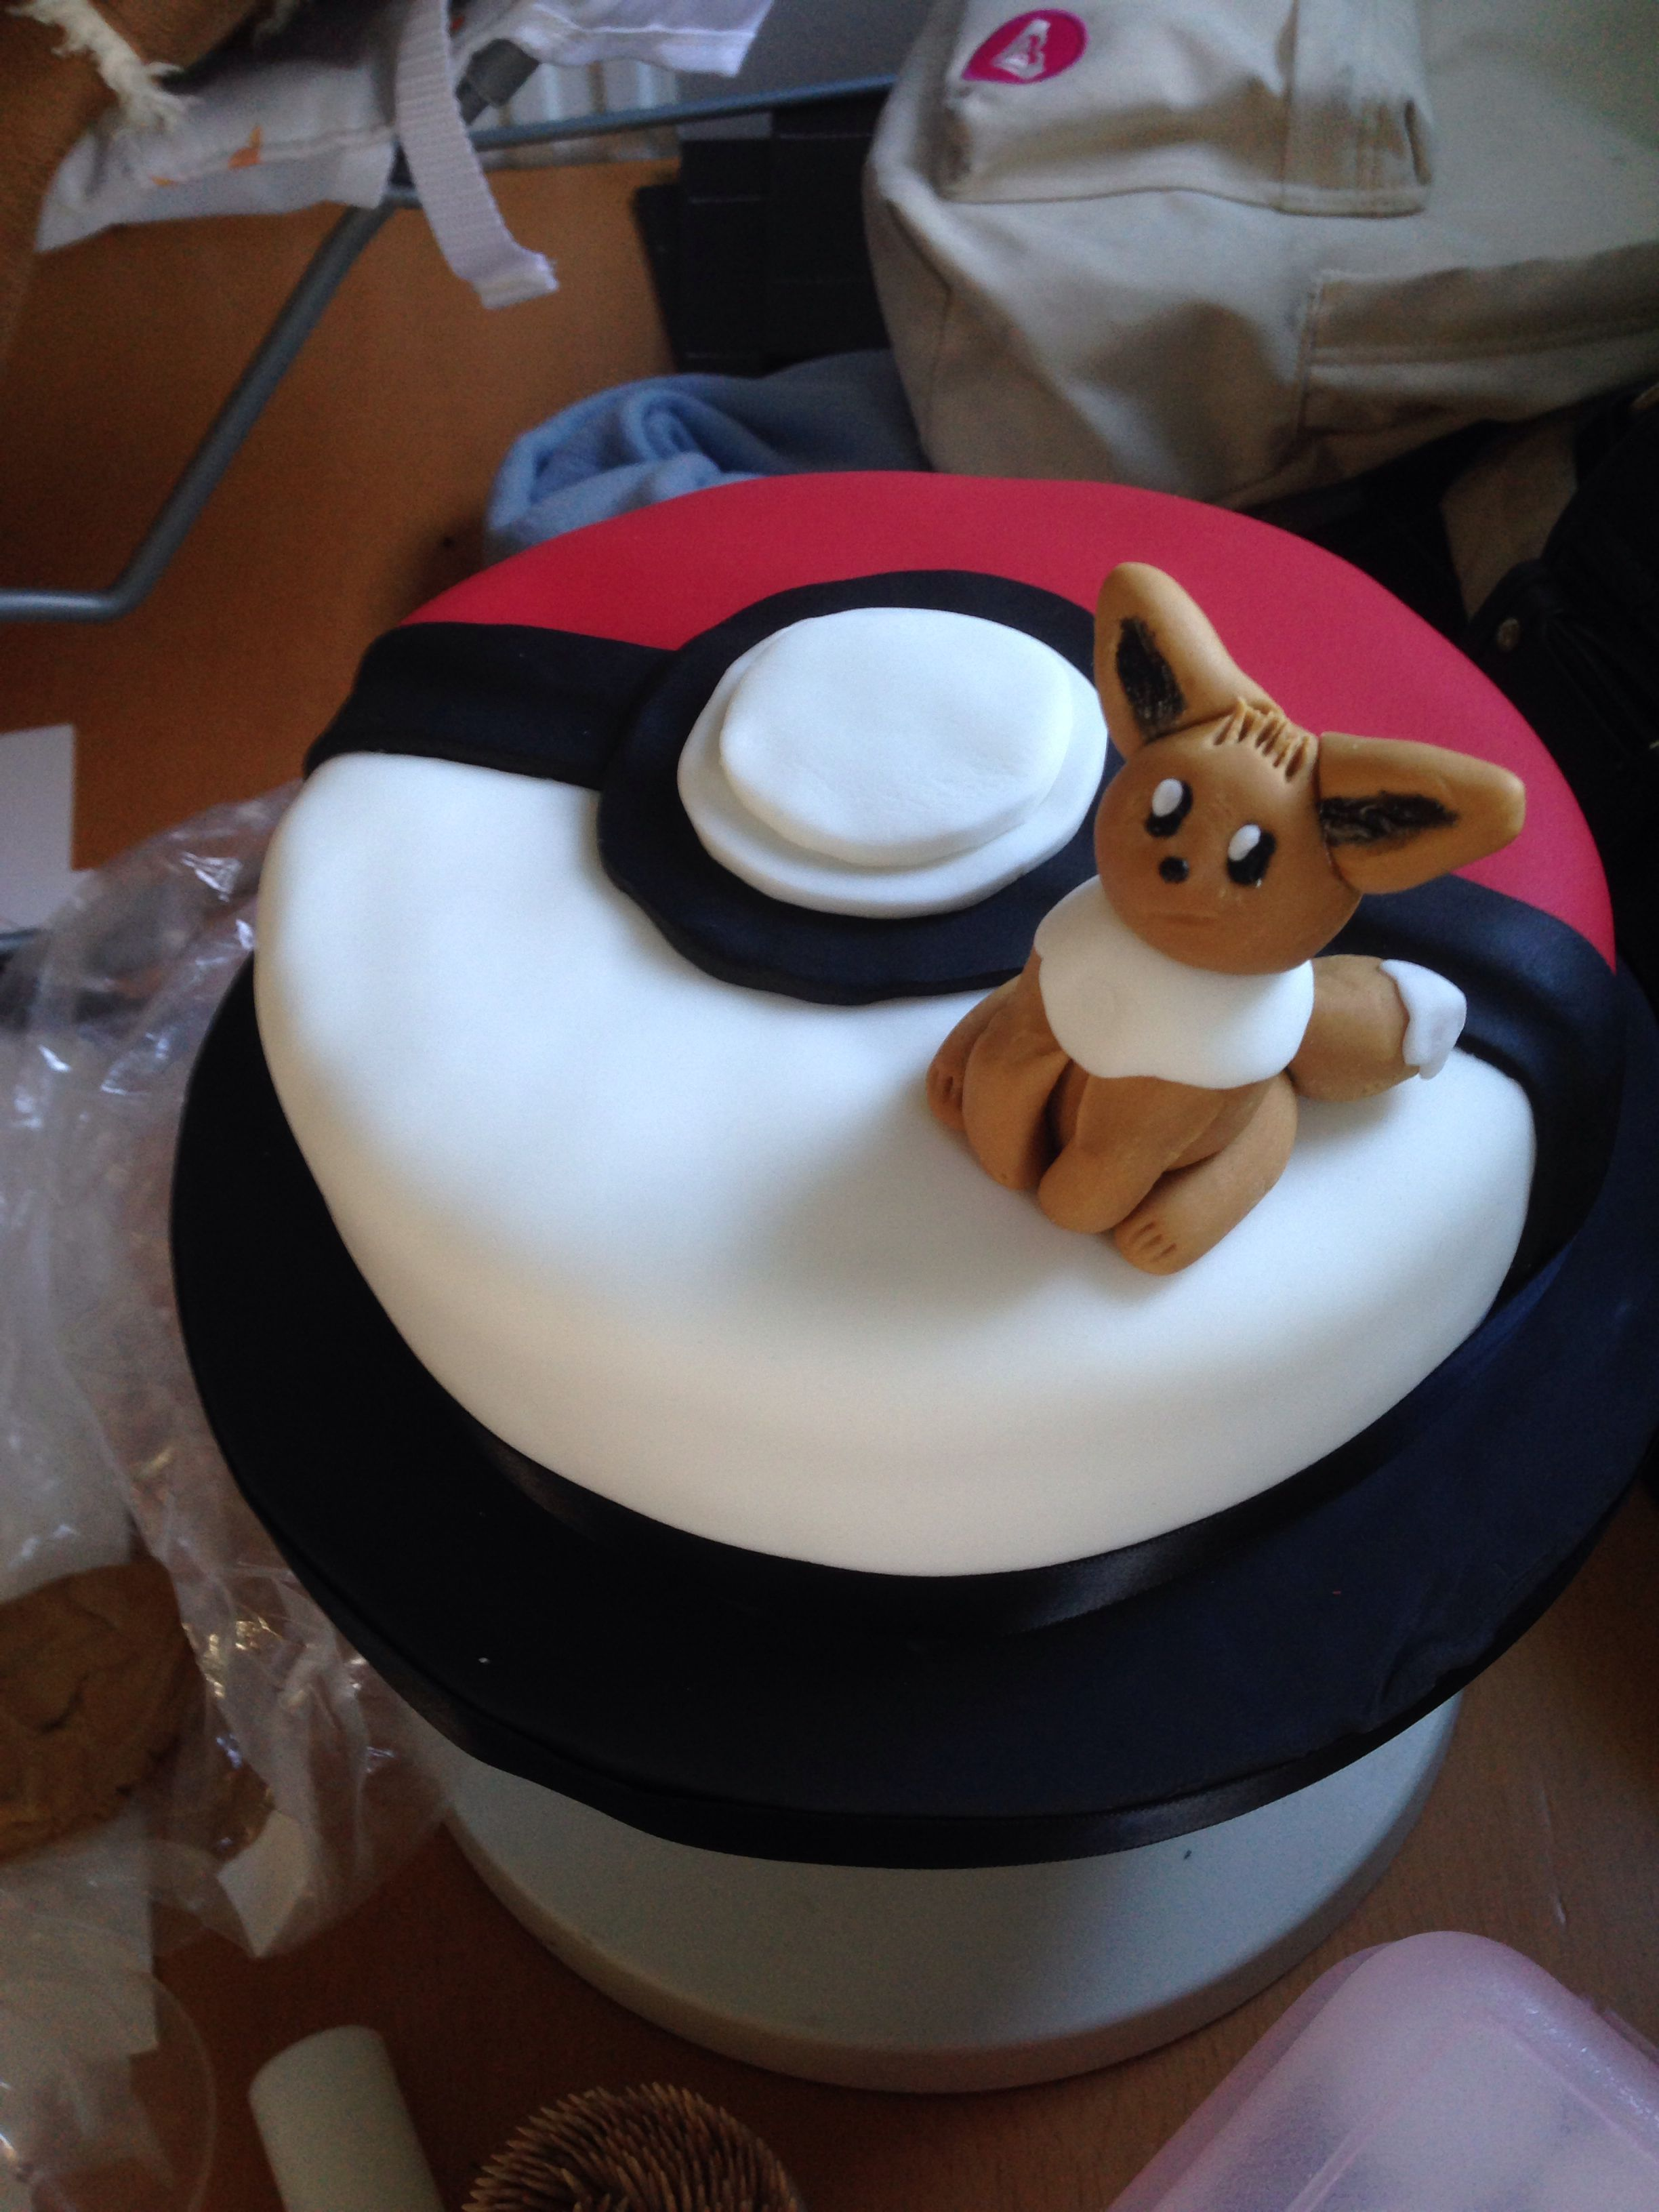 Eevee Pokemon Cake Food Amp Drinks Pinterest Cake And